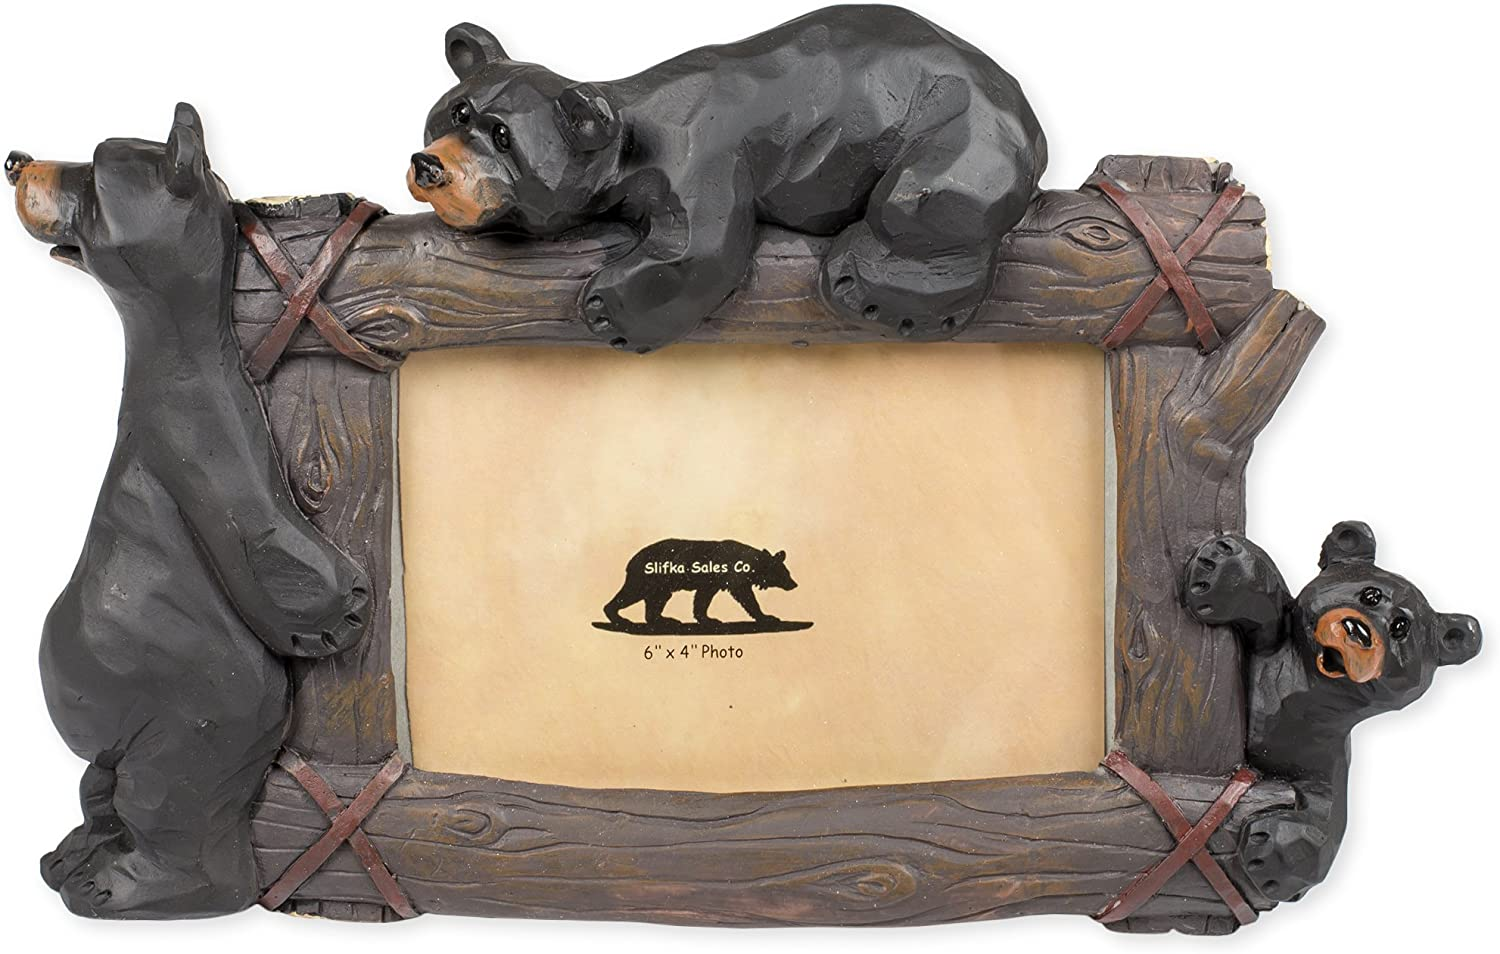 Slifka Sales Co. Climbing Bears 11 x 2 x 7.5 Inch Resin Crafted Tabletop 4x6 Picture Frame